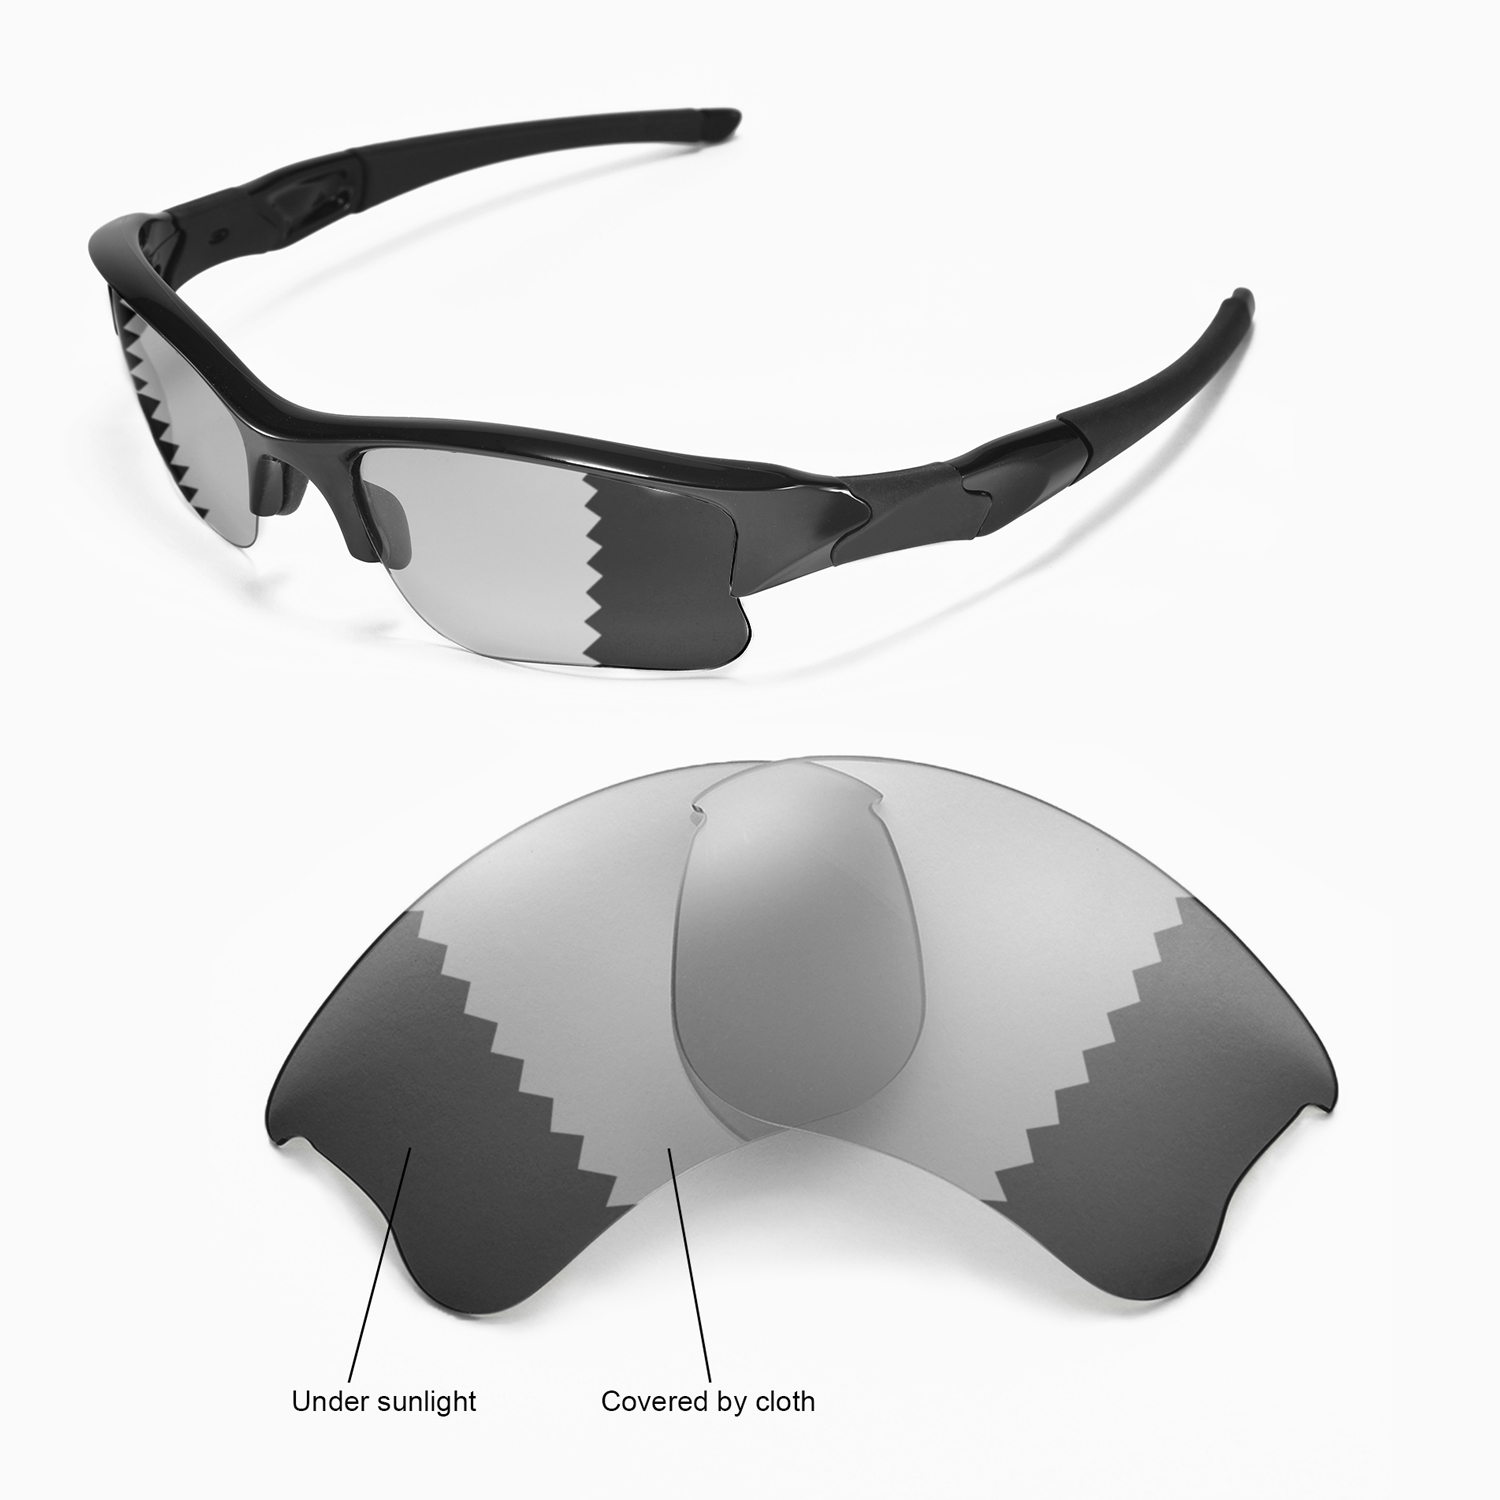 5a9e31c24b4 Details about New Walleva Polarized Transition Photochromic Lenses For Oakley  Flak Jacket XLJ